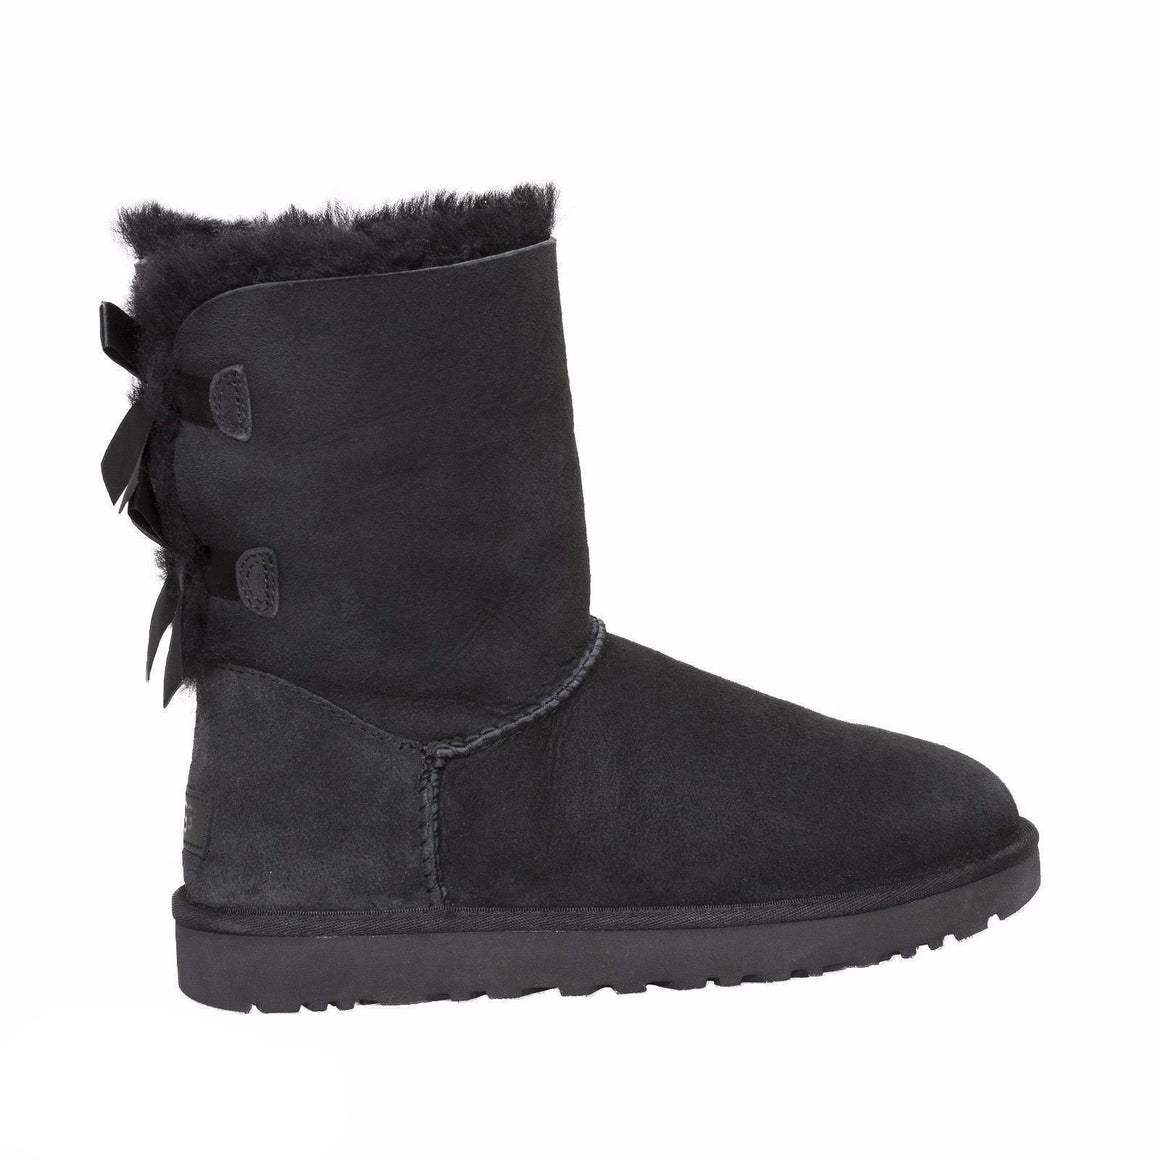 UGG Bailey Bow II Black Boots - Youth / Toddler